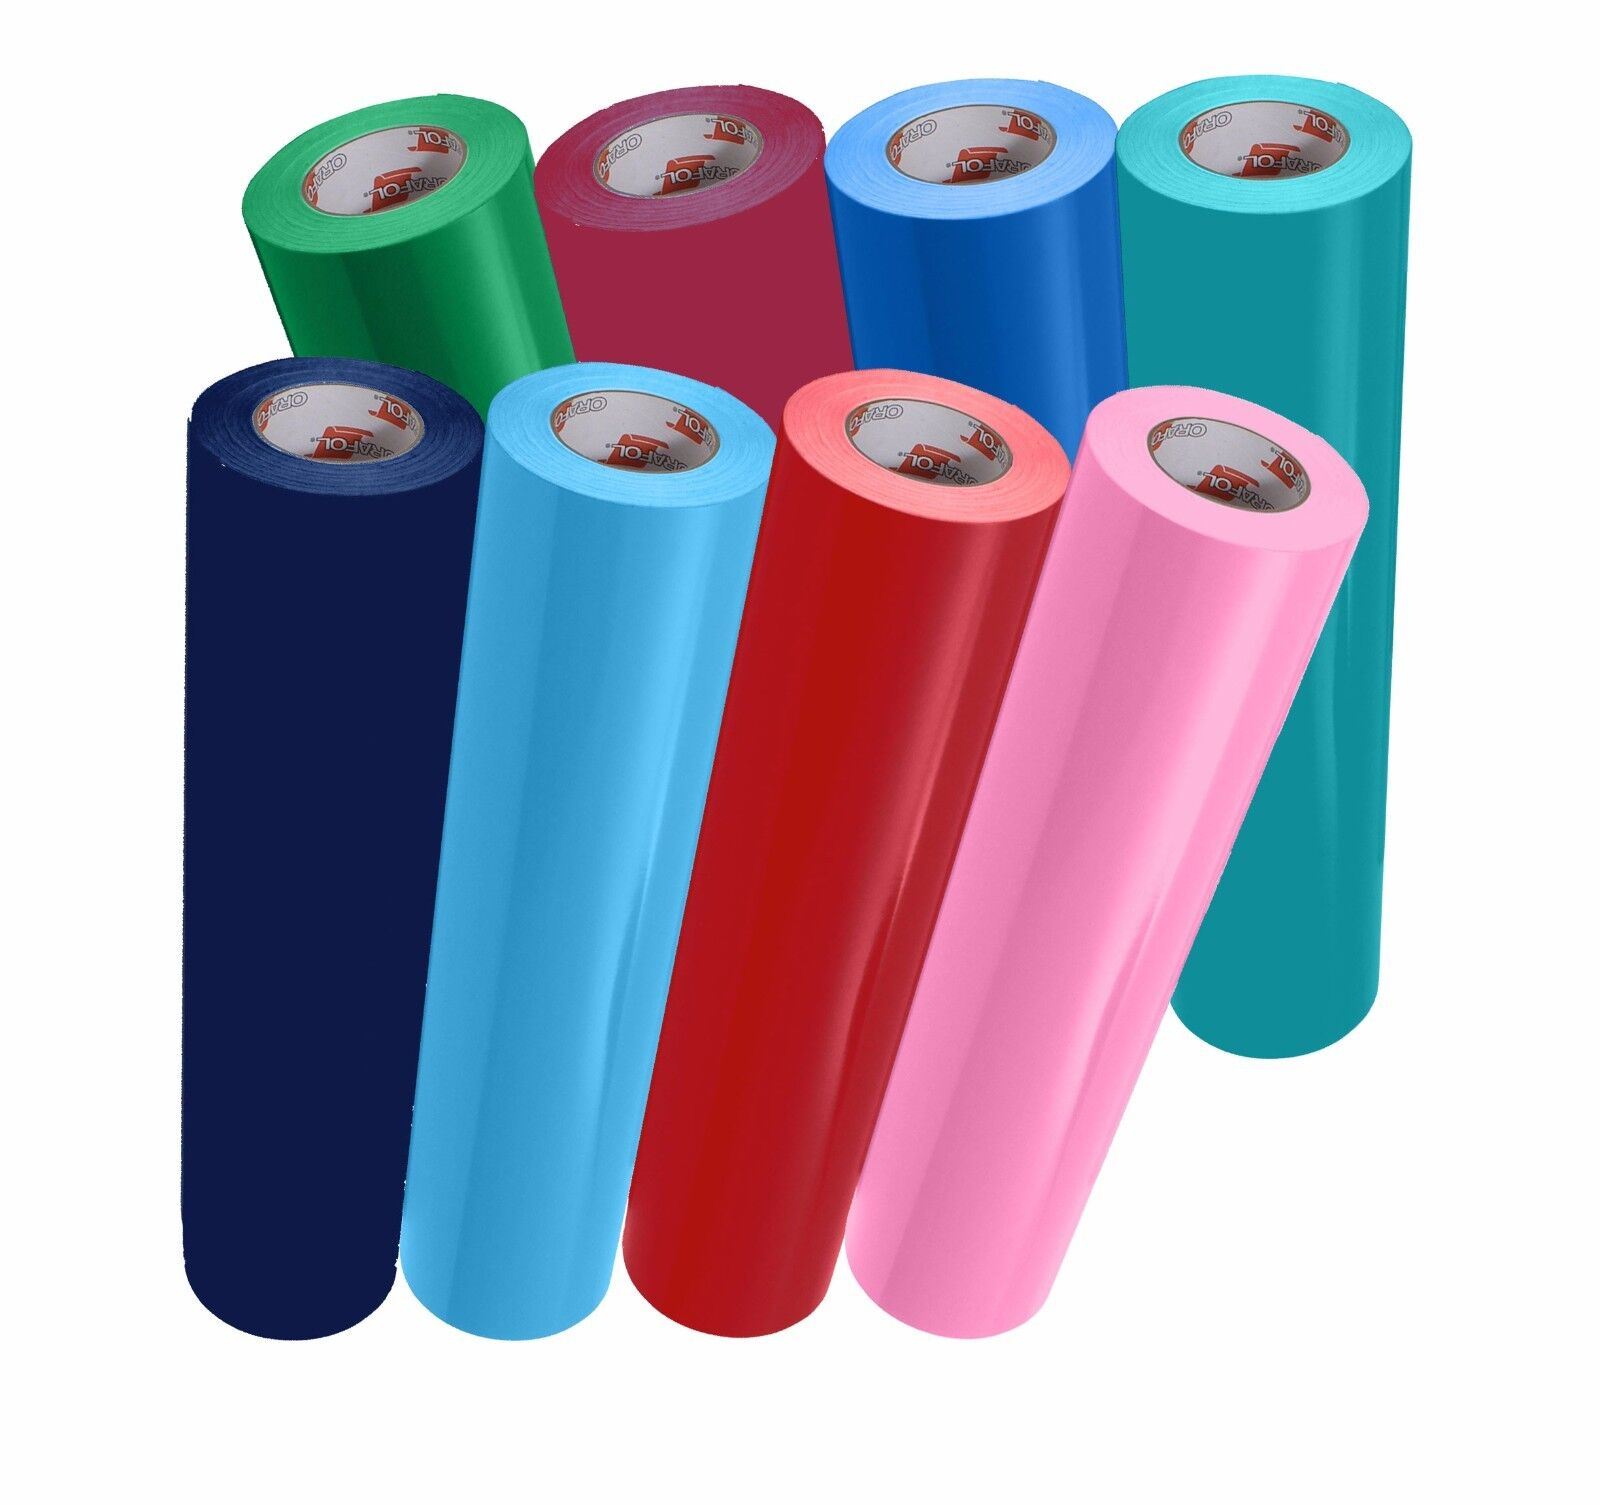 "Oracal 631 12"" x 5ft. Roll Adhesive Backed Vinyl - Different Colors"